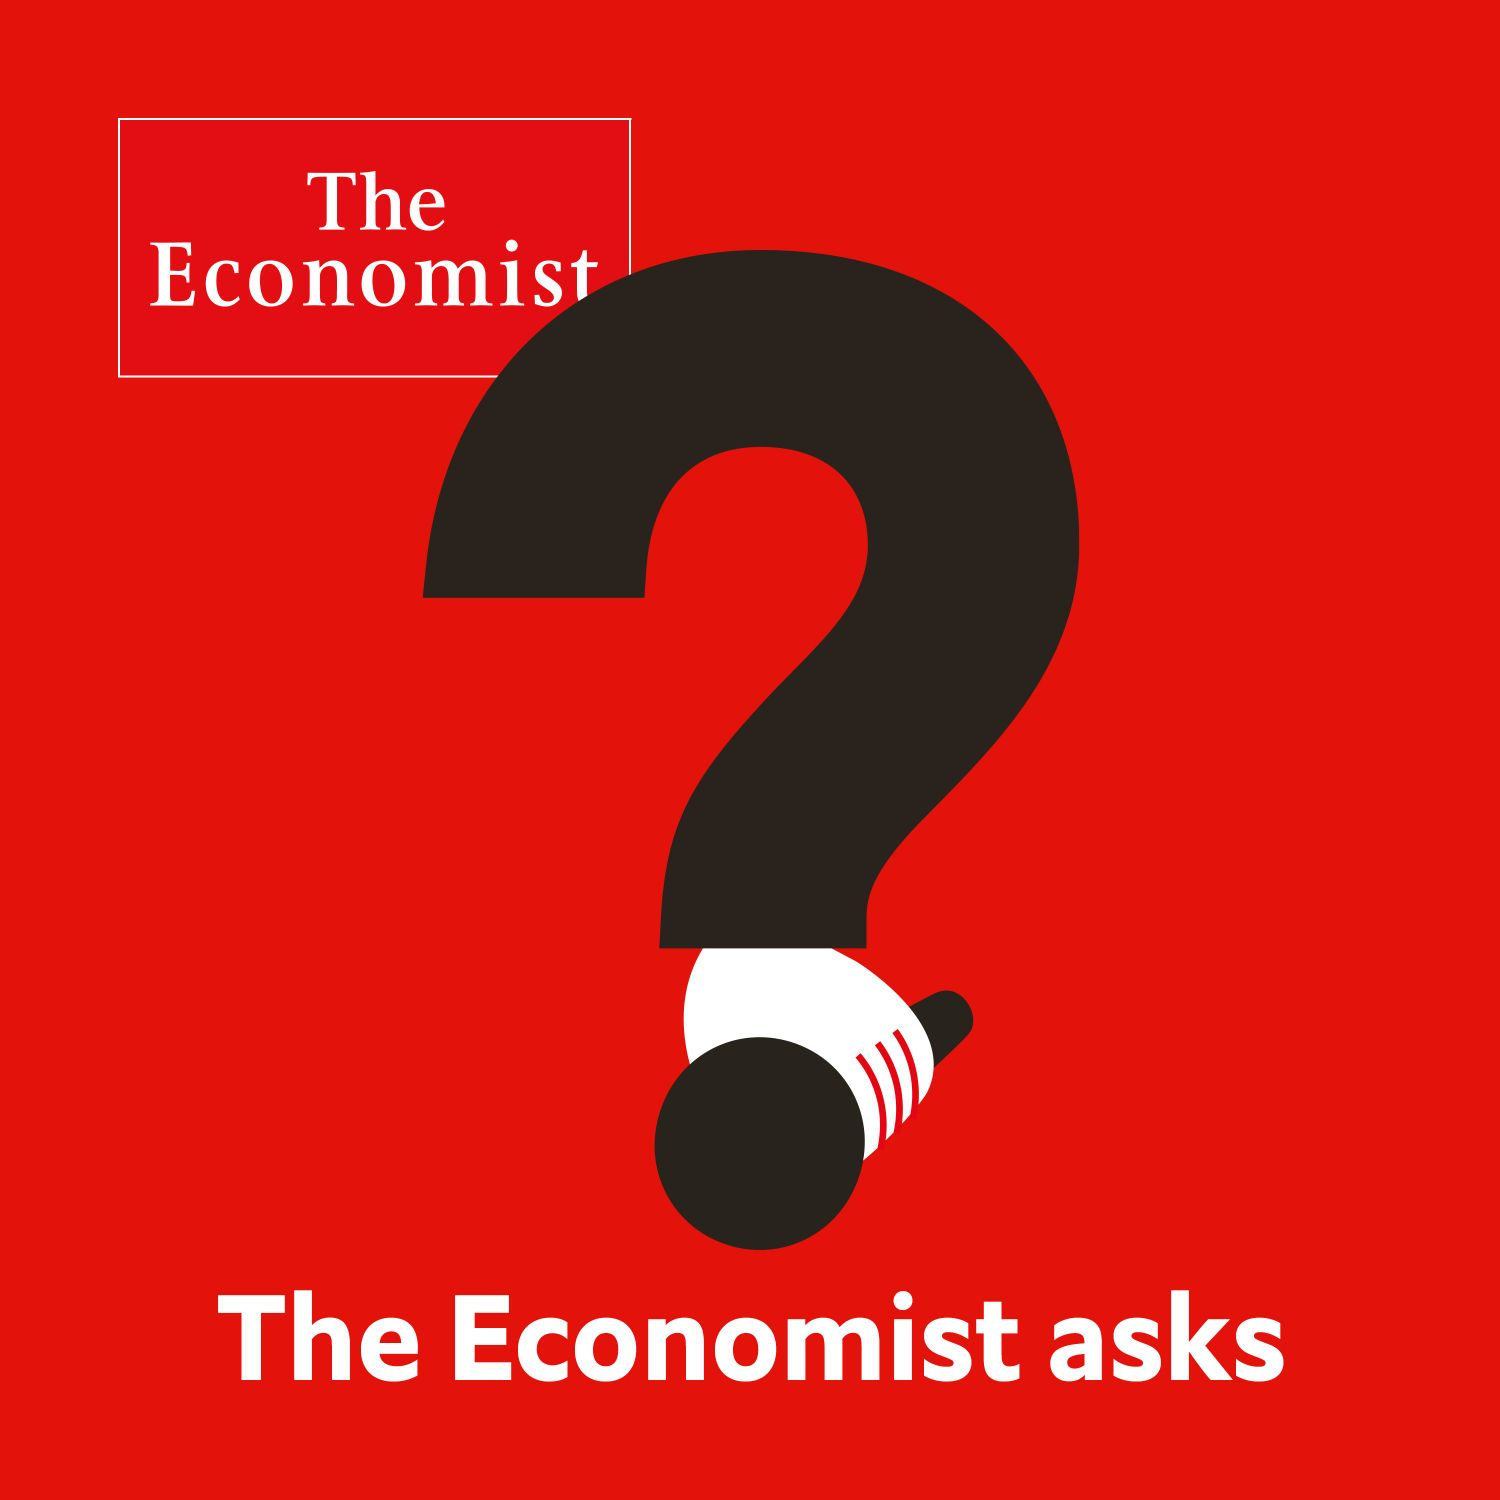 The Economist asks: Can America remain the world's biggest economic power?